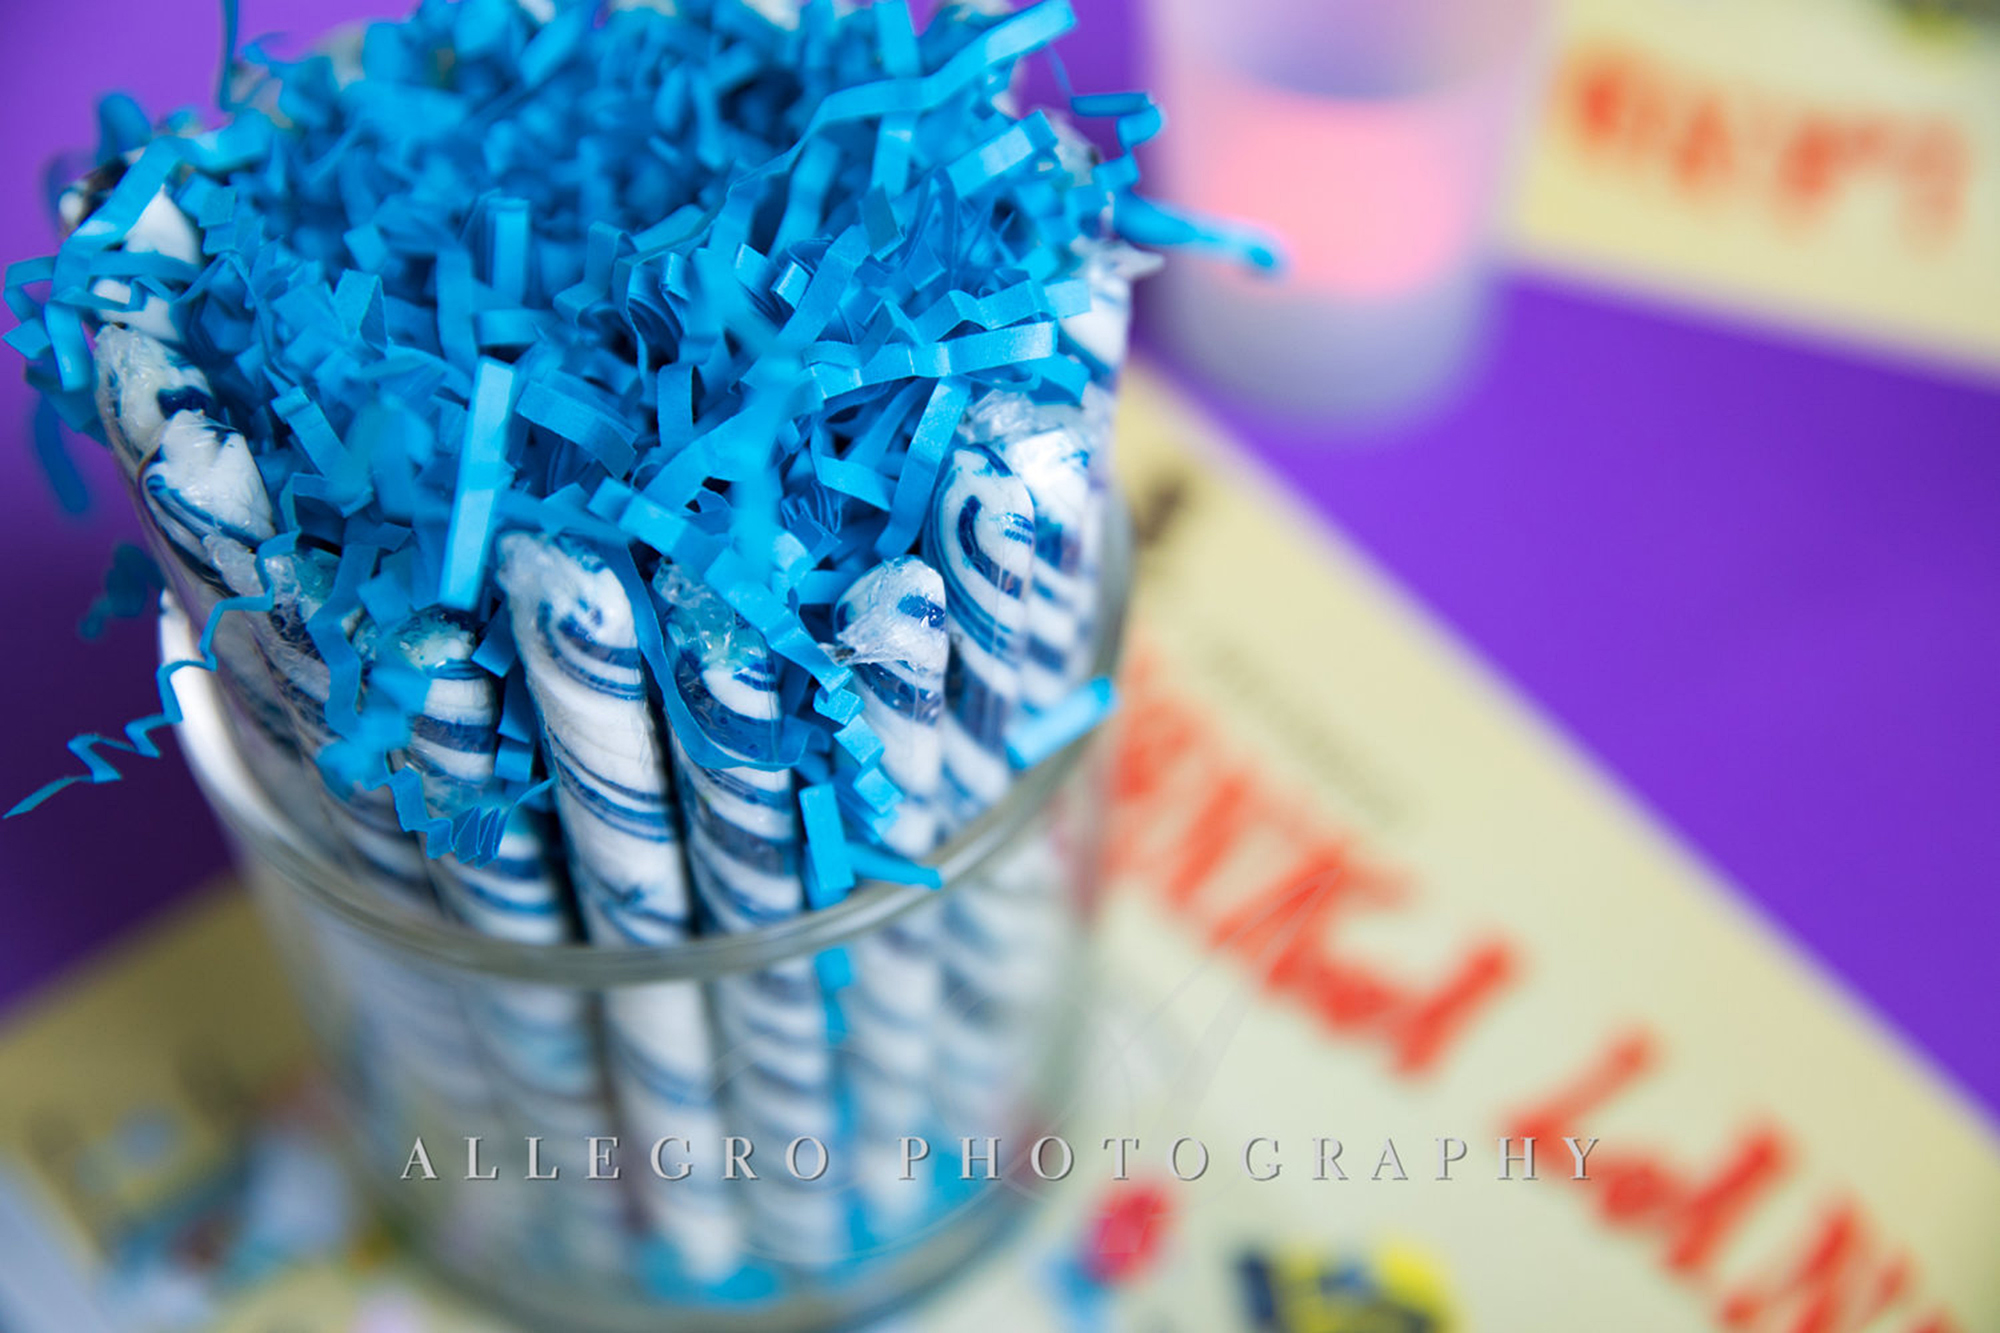 03_Corporate Willy Wonka Event Candy Details_AE Events.jpg